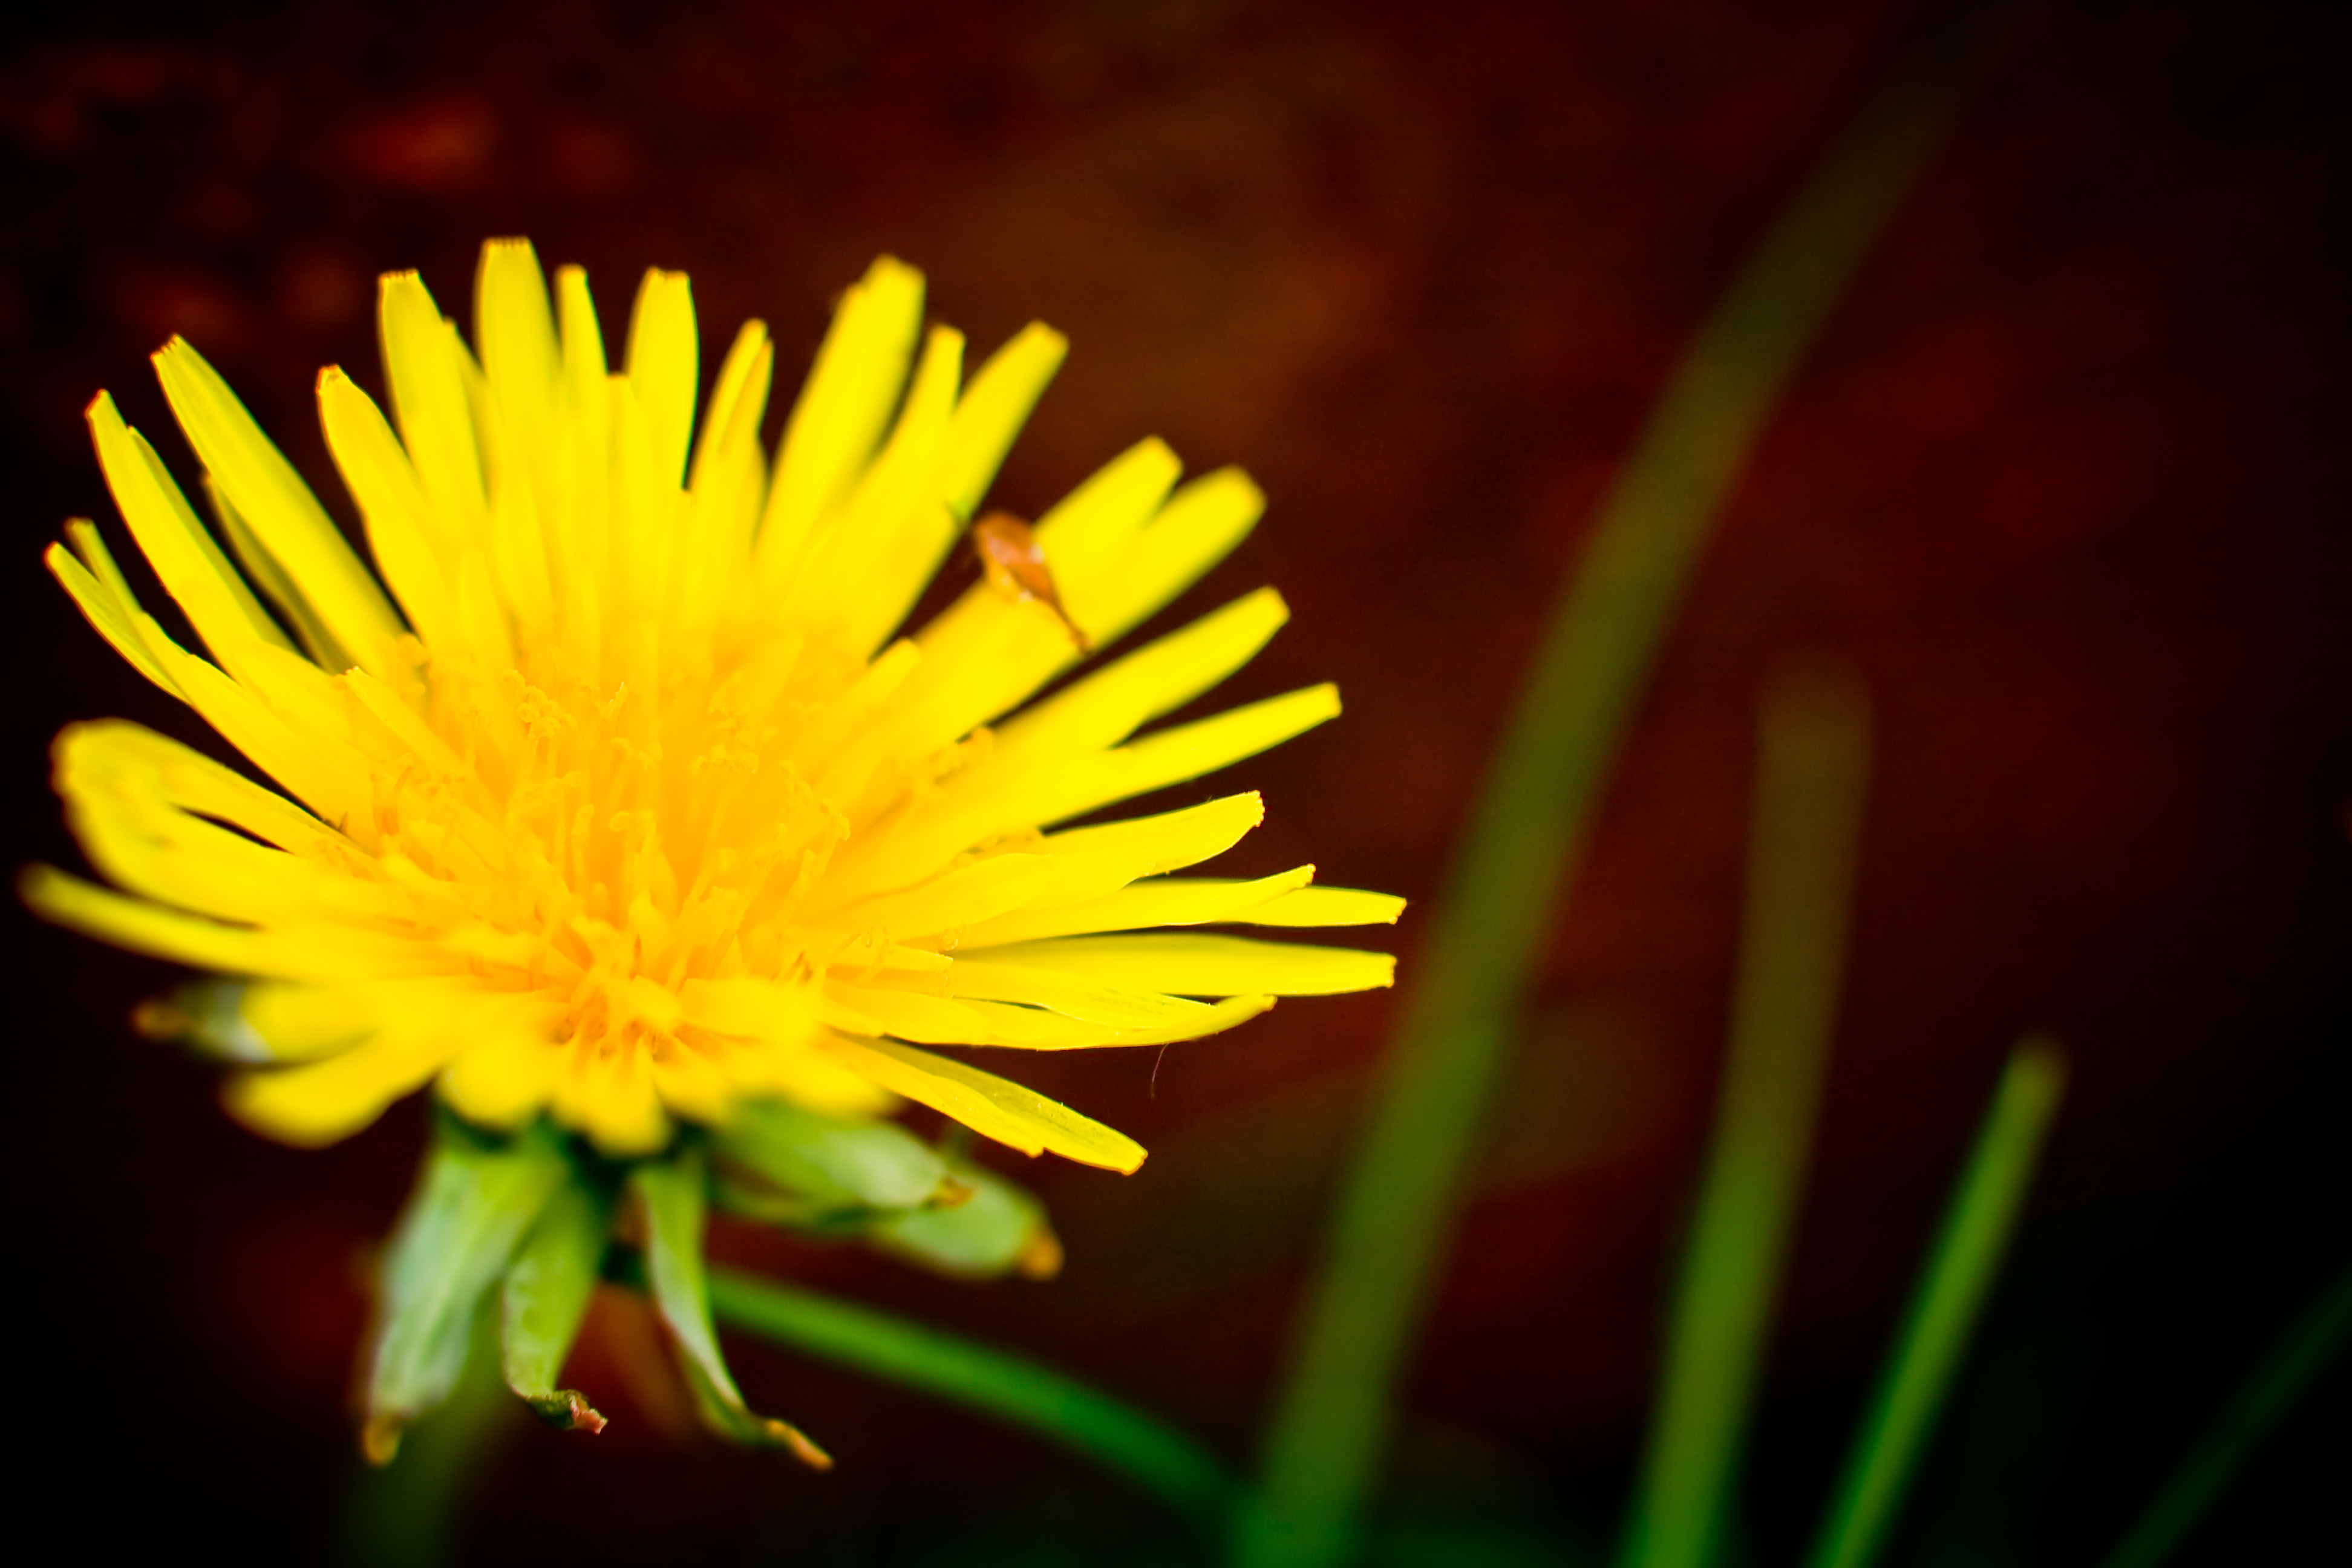 DANDELION by Rick Harris